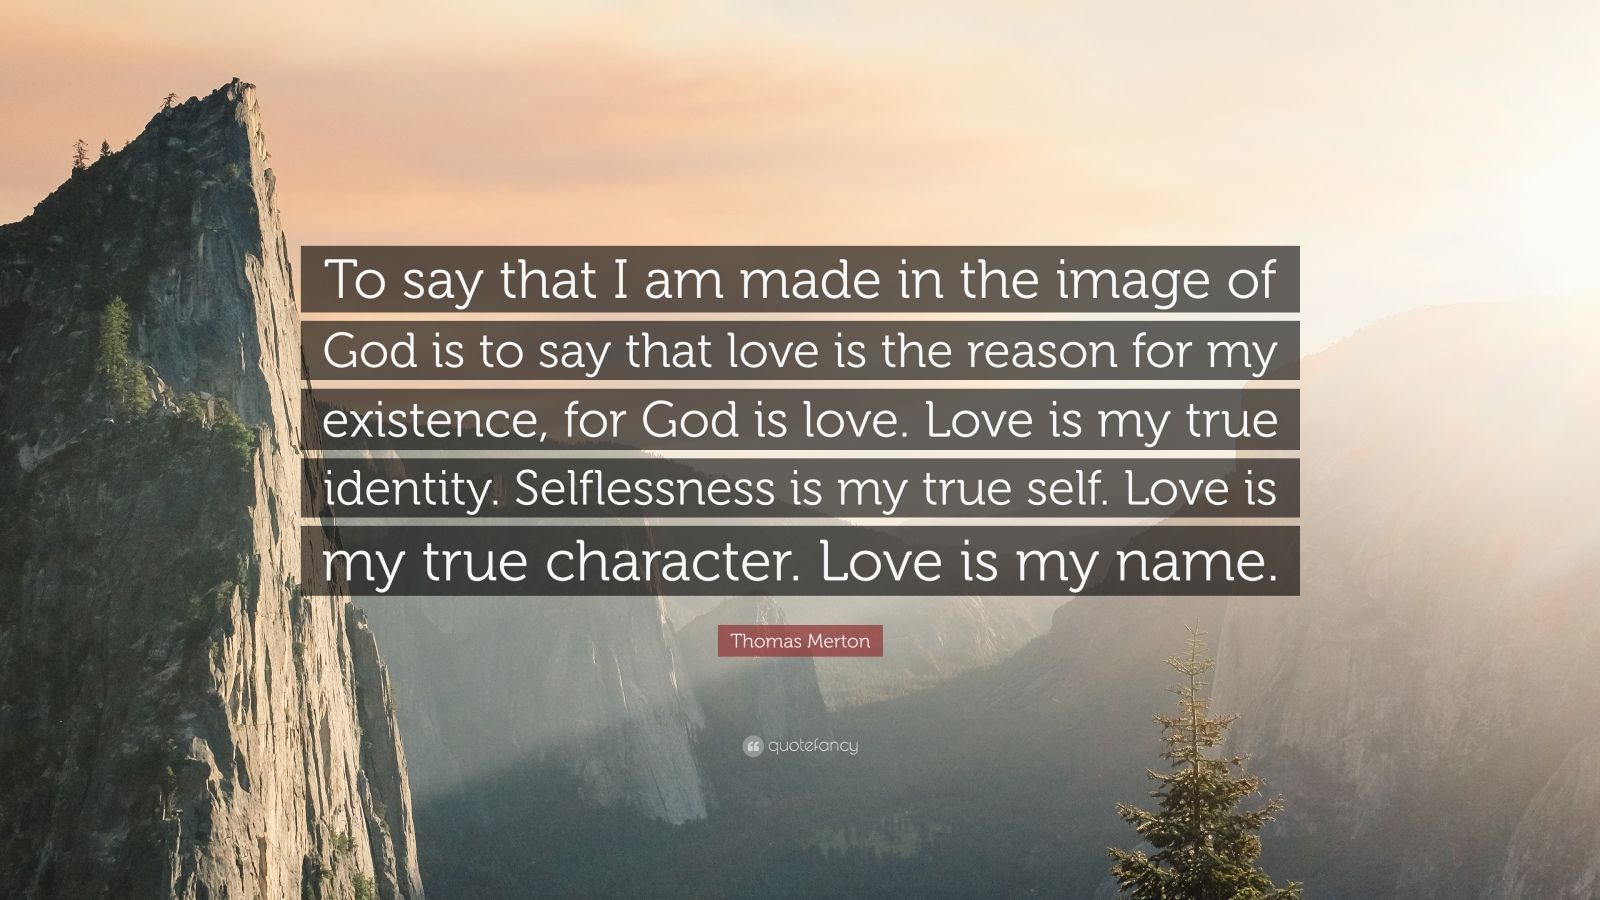 """Thomas Merton Quote: """"To say that I am made in the image of God is to say that love is the reason for my existence, for God is love. Love is my true identity. Selflessness is my true self. Love is my true character. Love is my name."""""""